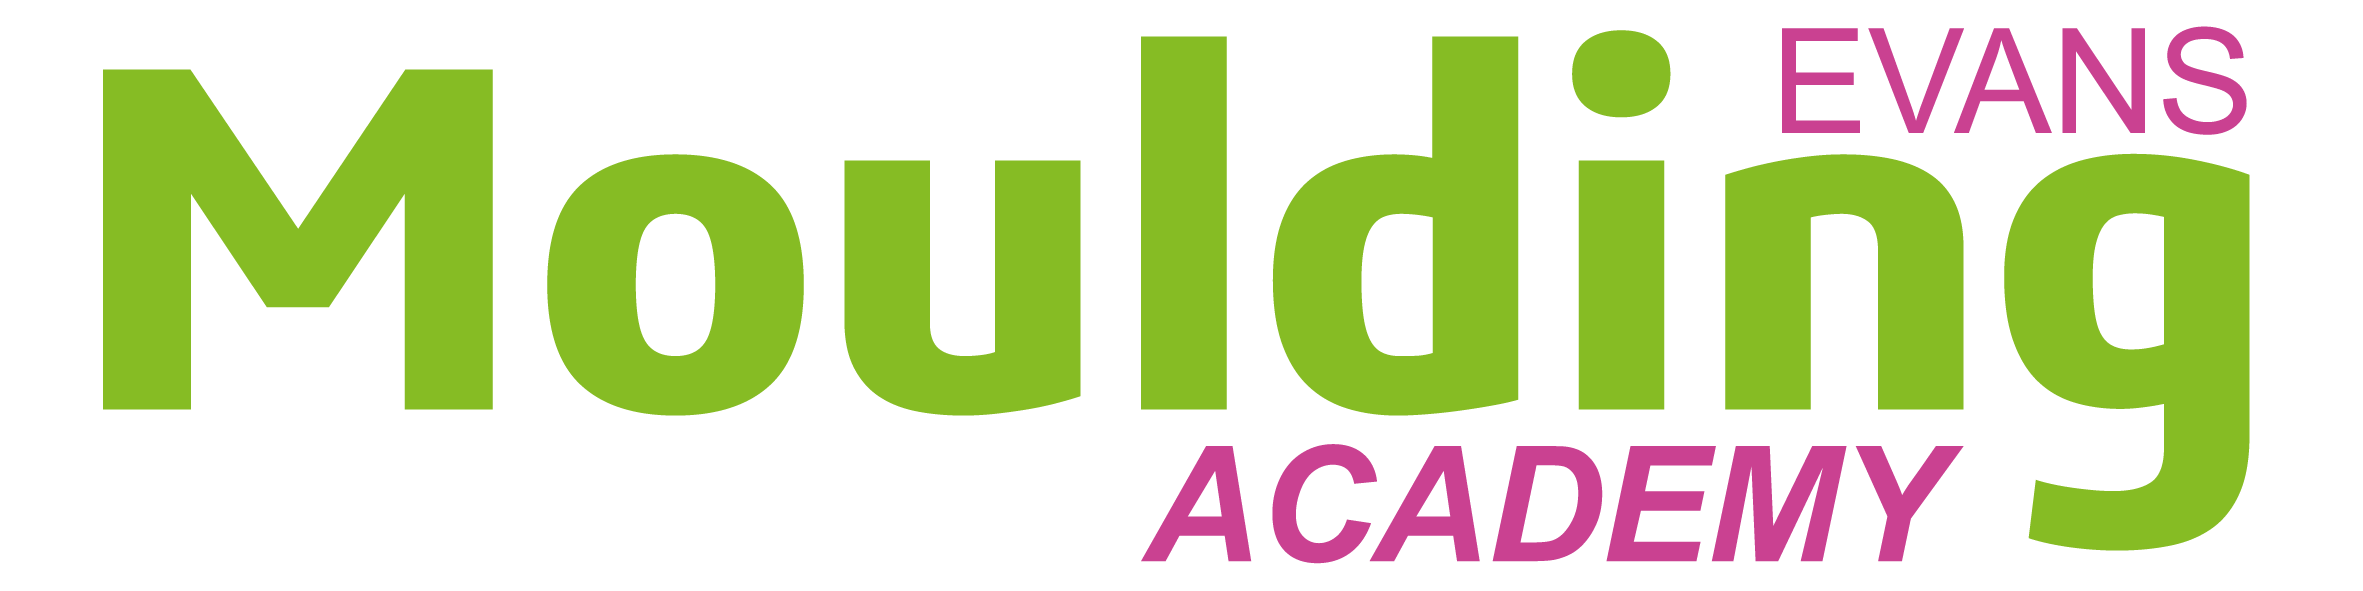 Moulding Academy